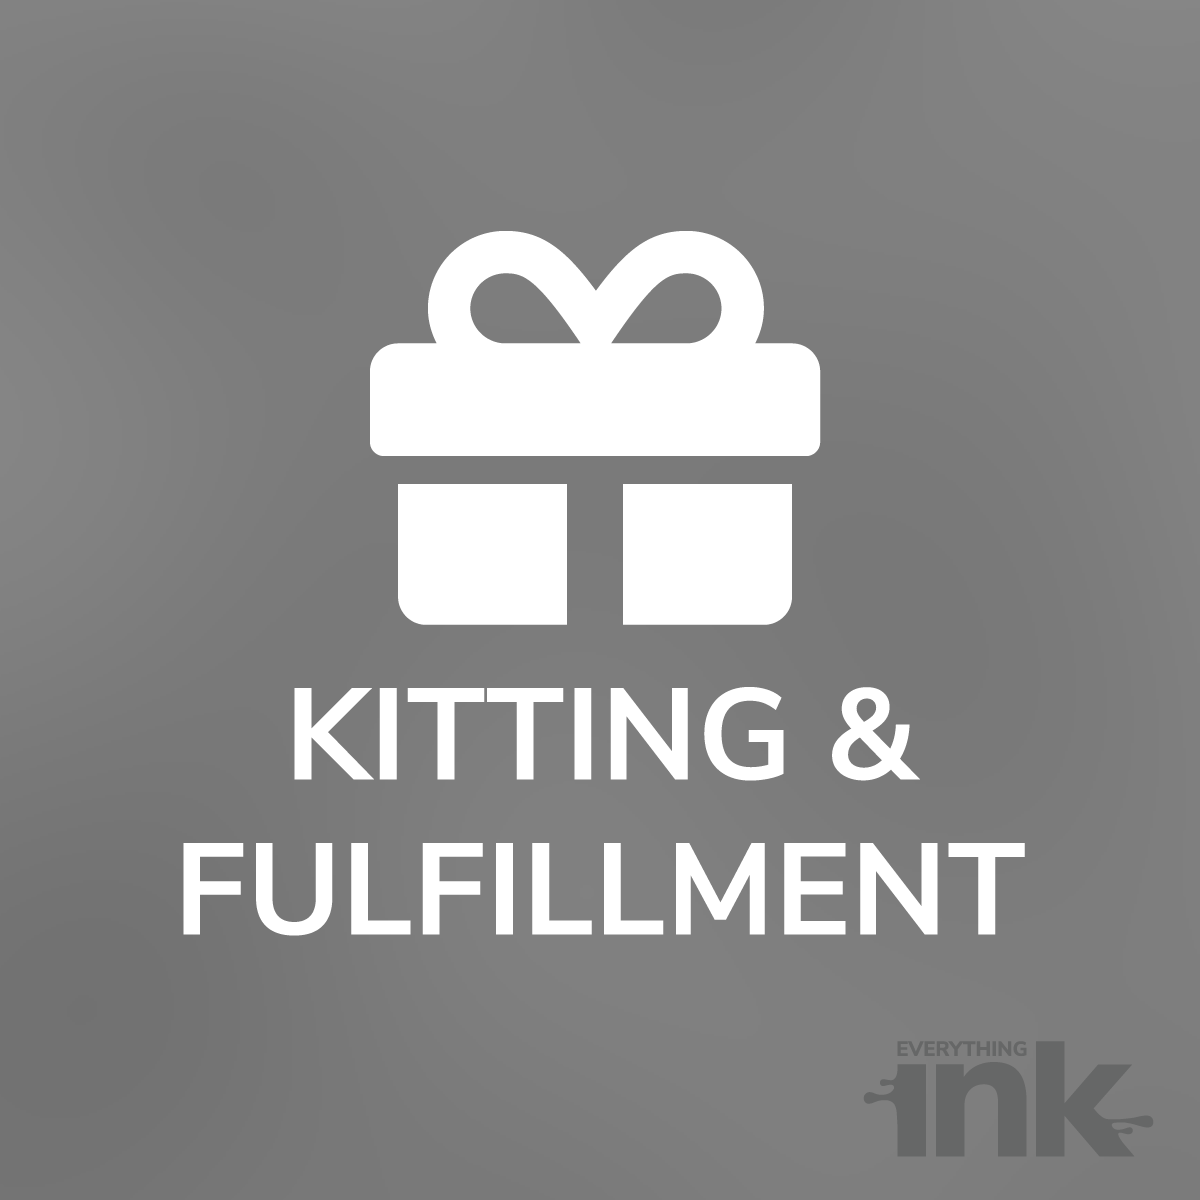 Kitting and Fulfillment by Everything Ink